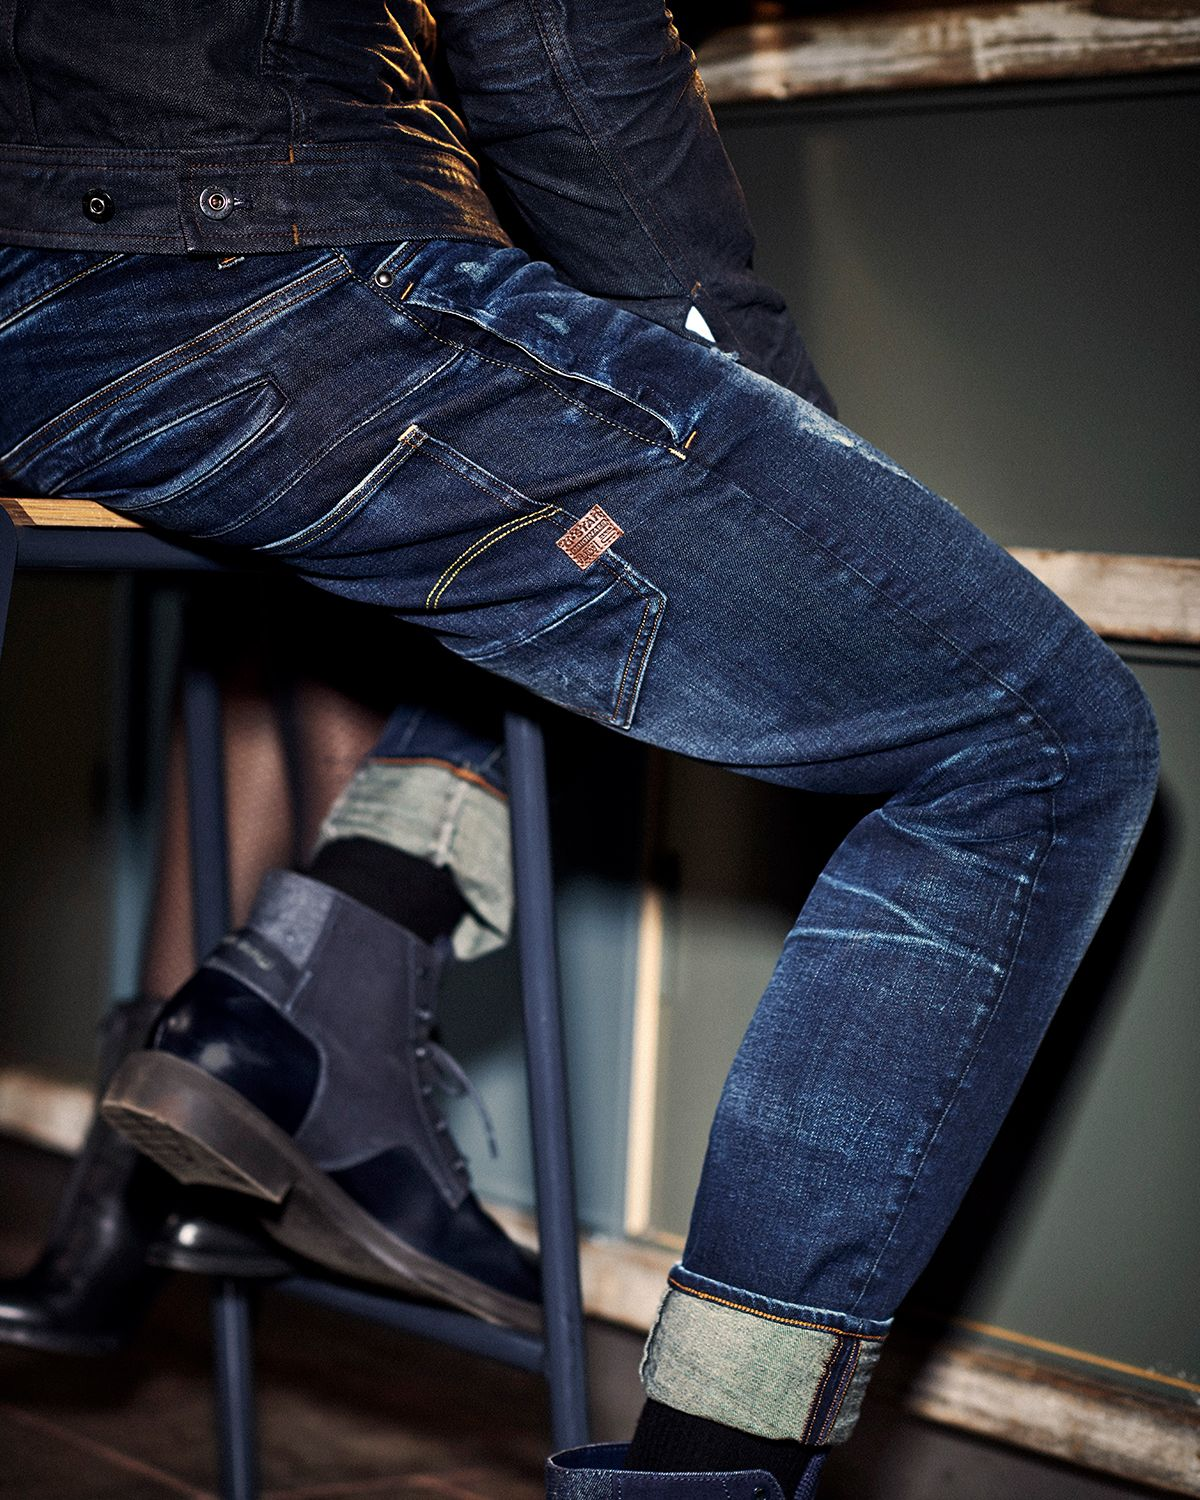 D Staq 3d Slim Jeans Worn In Wave Destroyed G Star Raw Mens Pants Fashion Denim Shirt With Jeans Pants Outfit Men